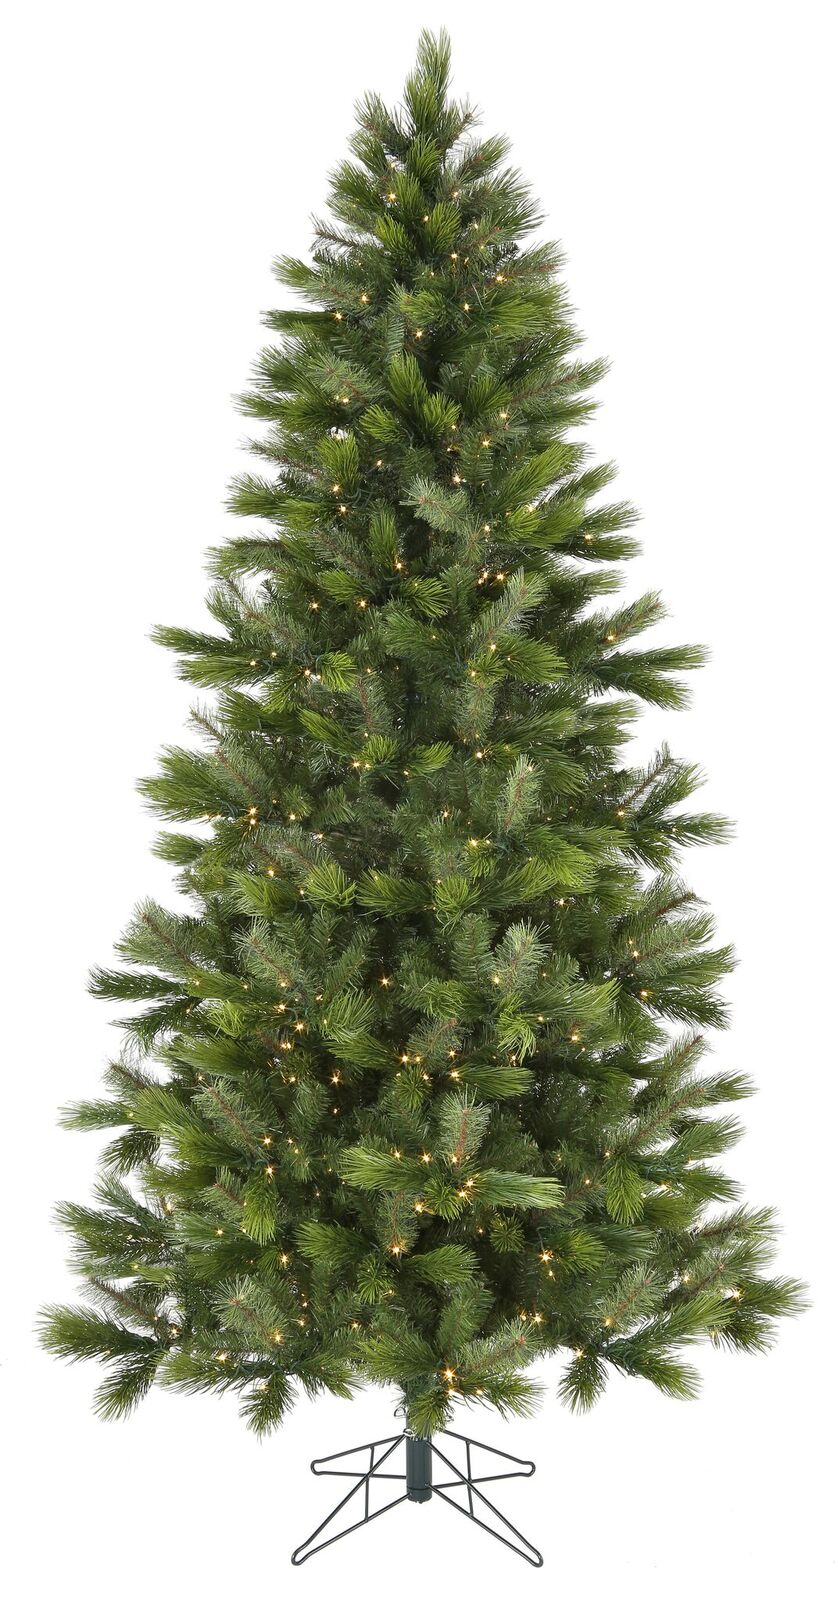 on sale carolina pine pre lit led artificial christmas tree - Pre Decorated Christmas Trees For Sale